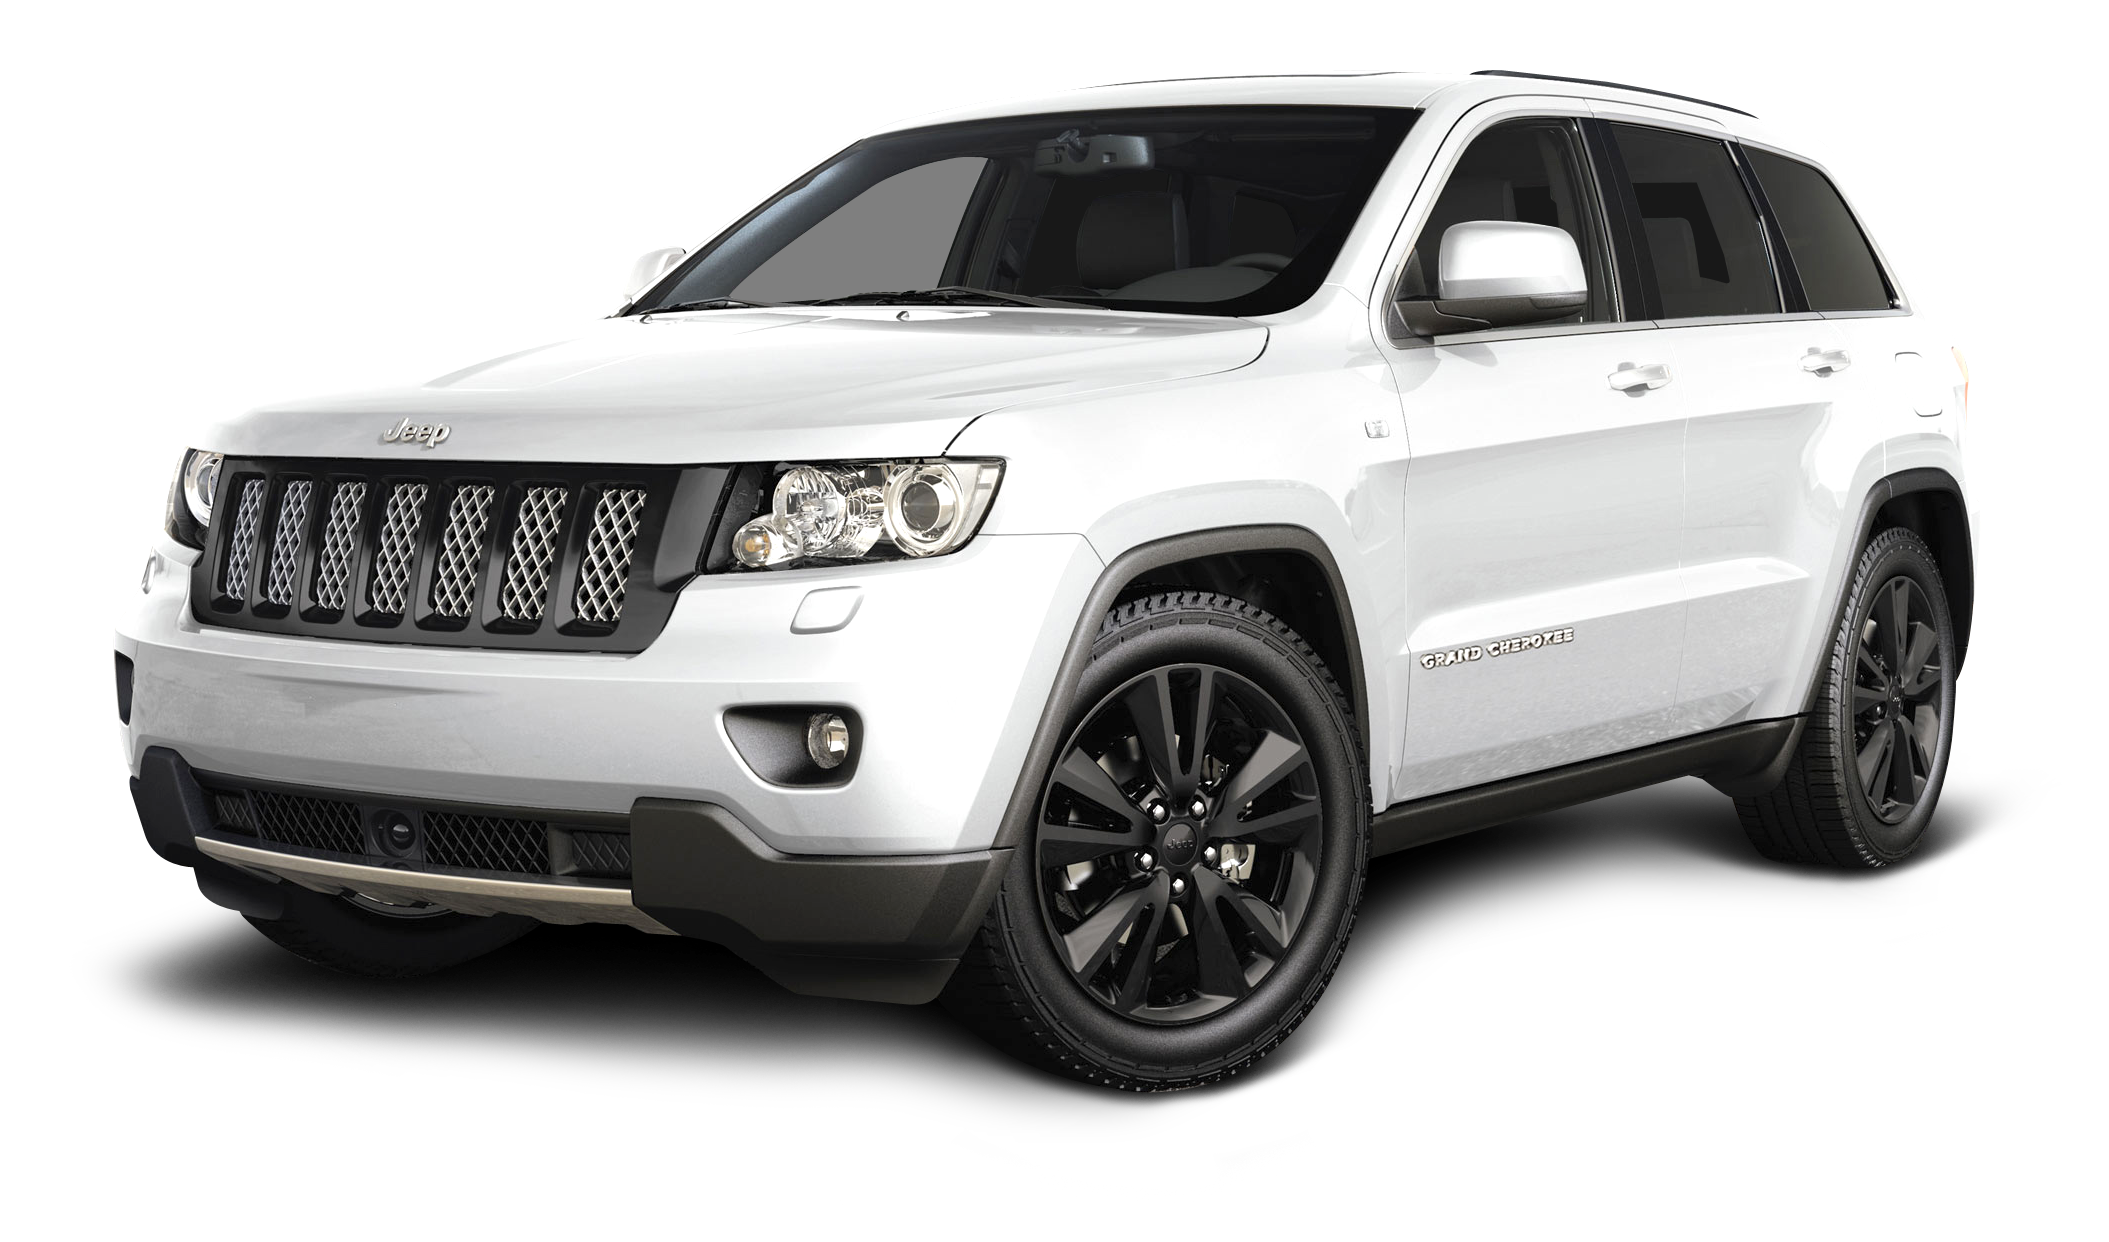 Jeep grand cherokee png. Car image purepng free